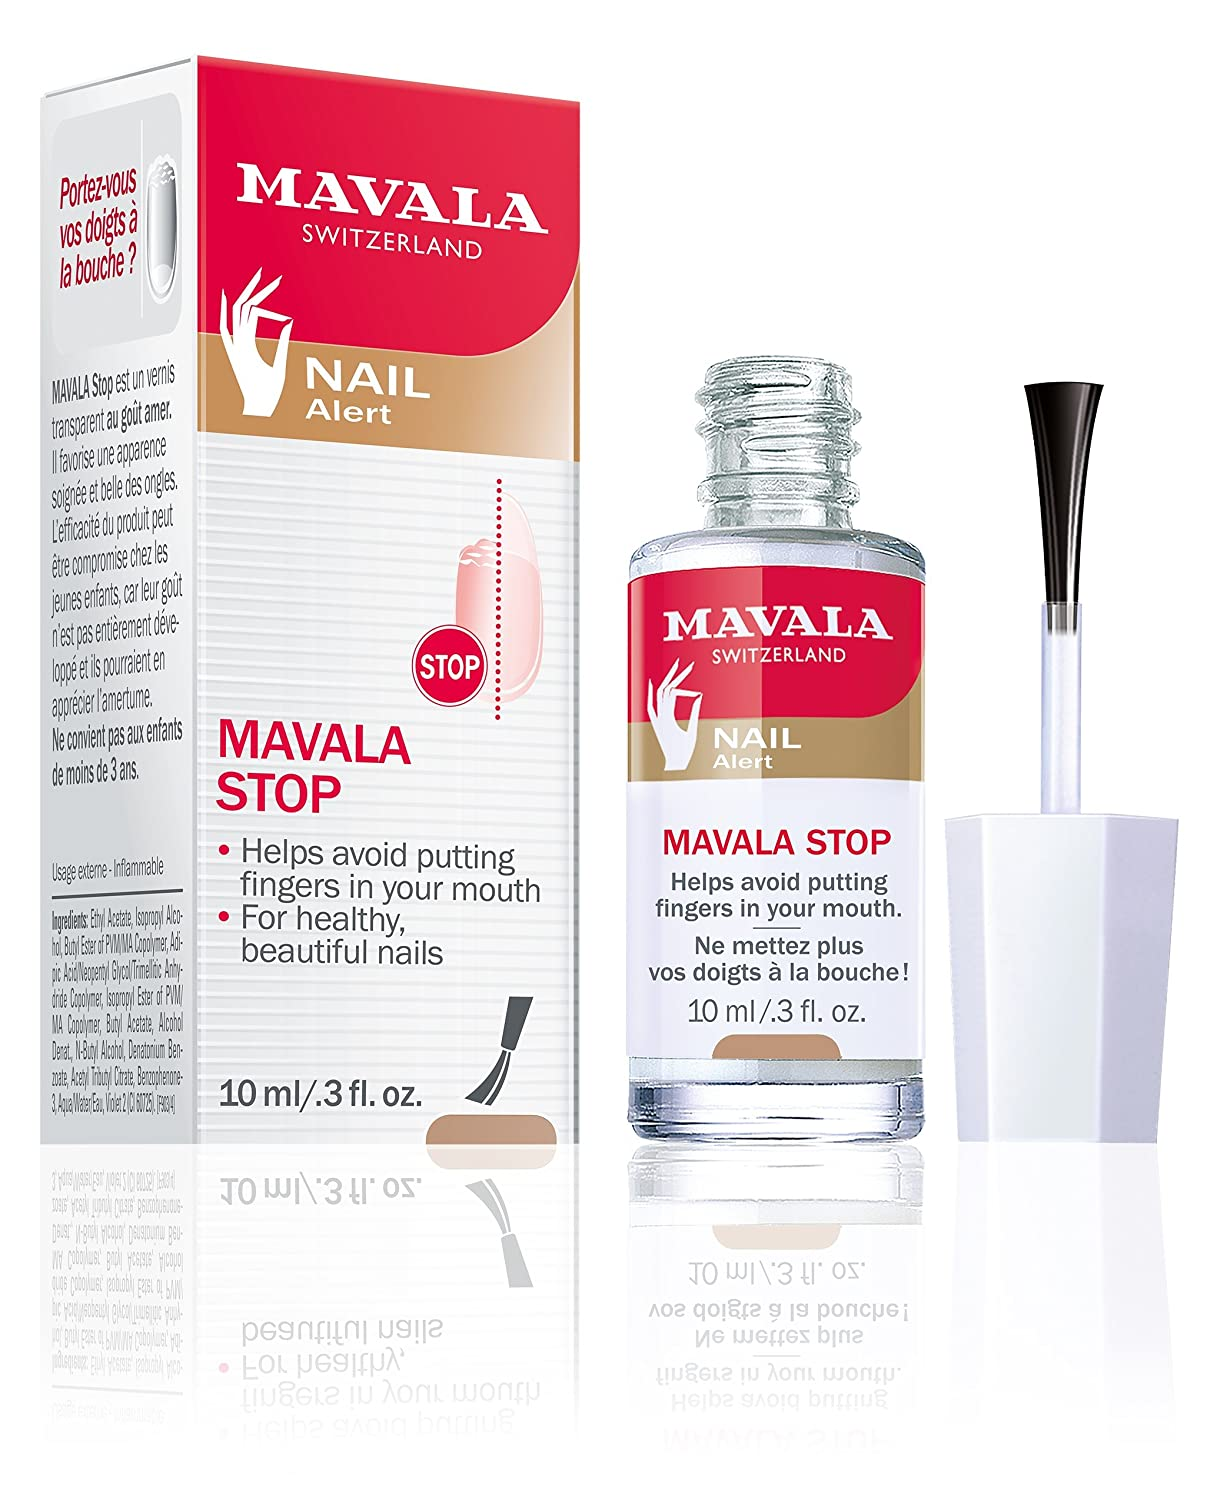 Amazon.com: Mavala Switzerland Mavala Stop Nail Biting, 0.3 oz: Beauty